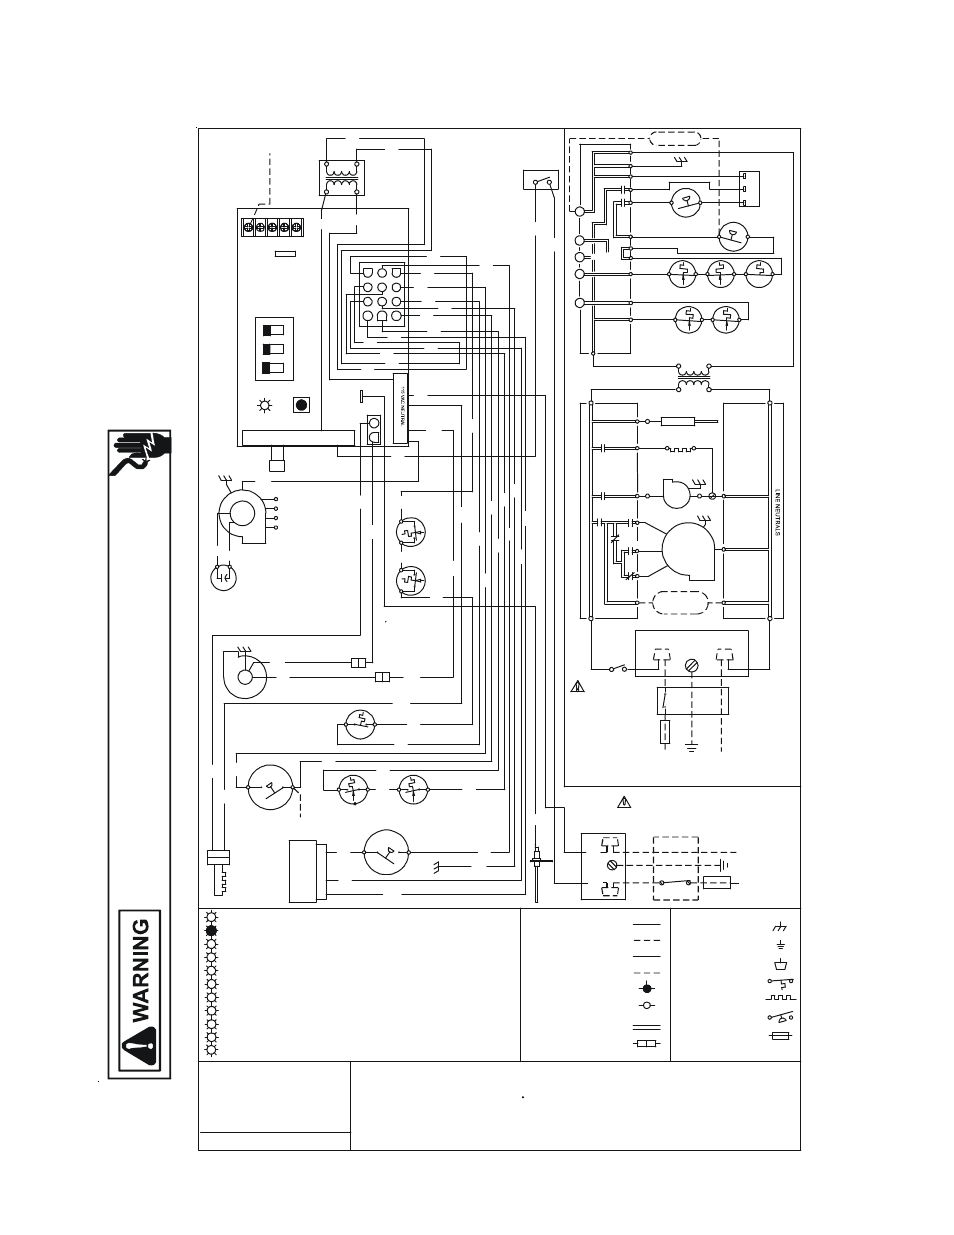 Wiring diagrams | Goodman Mfg GMH95 User Manual | Page 15 / 15